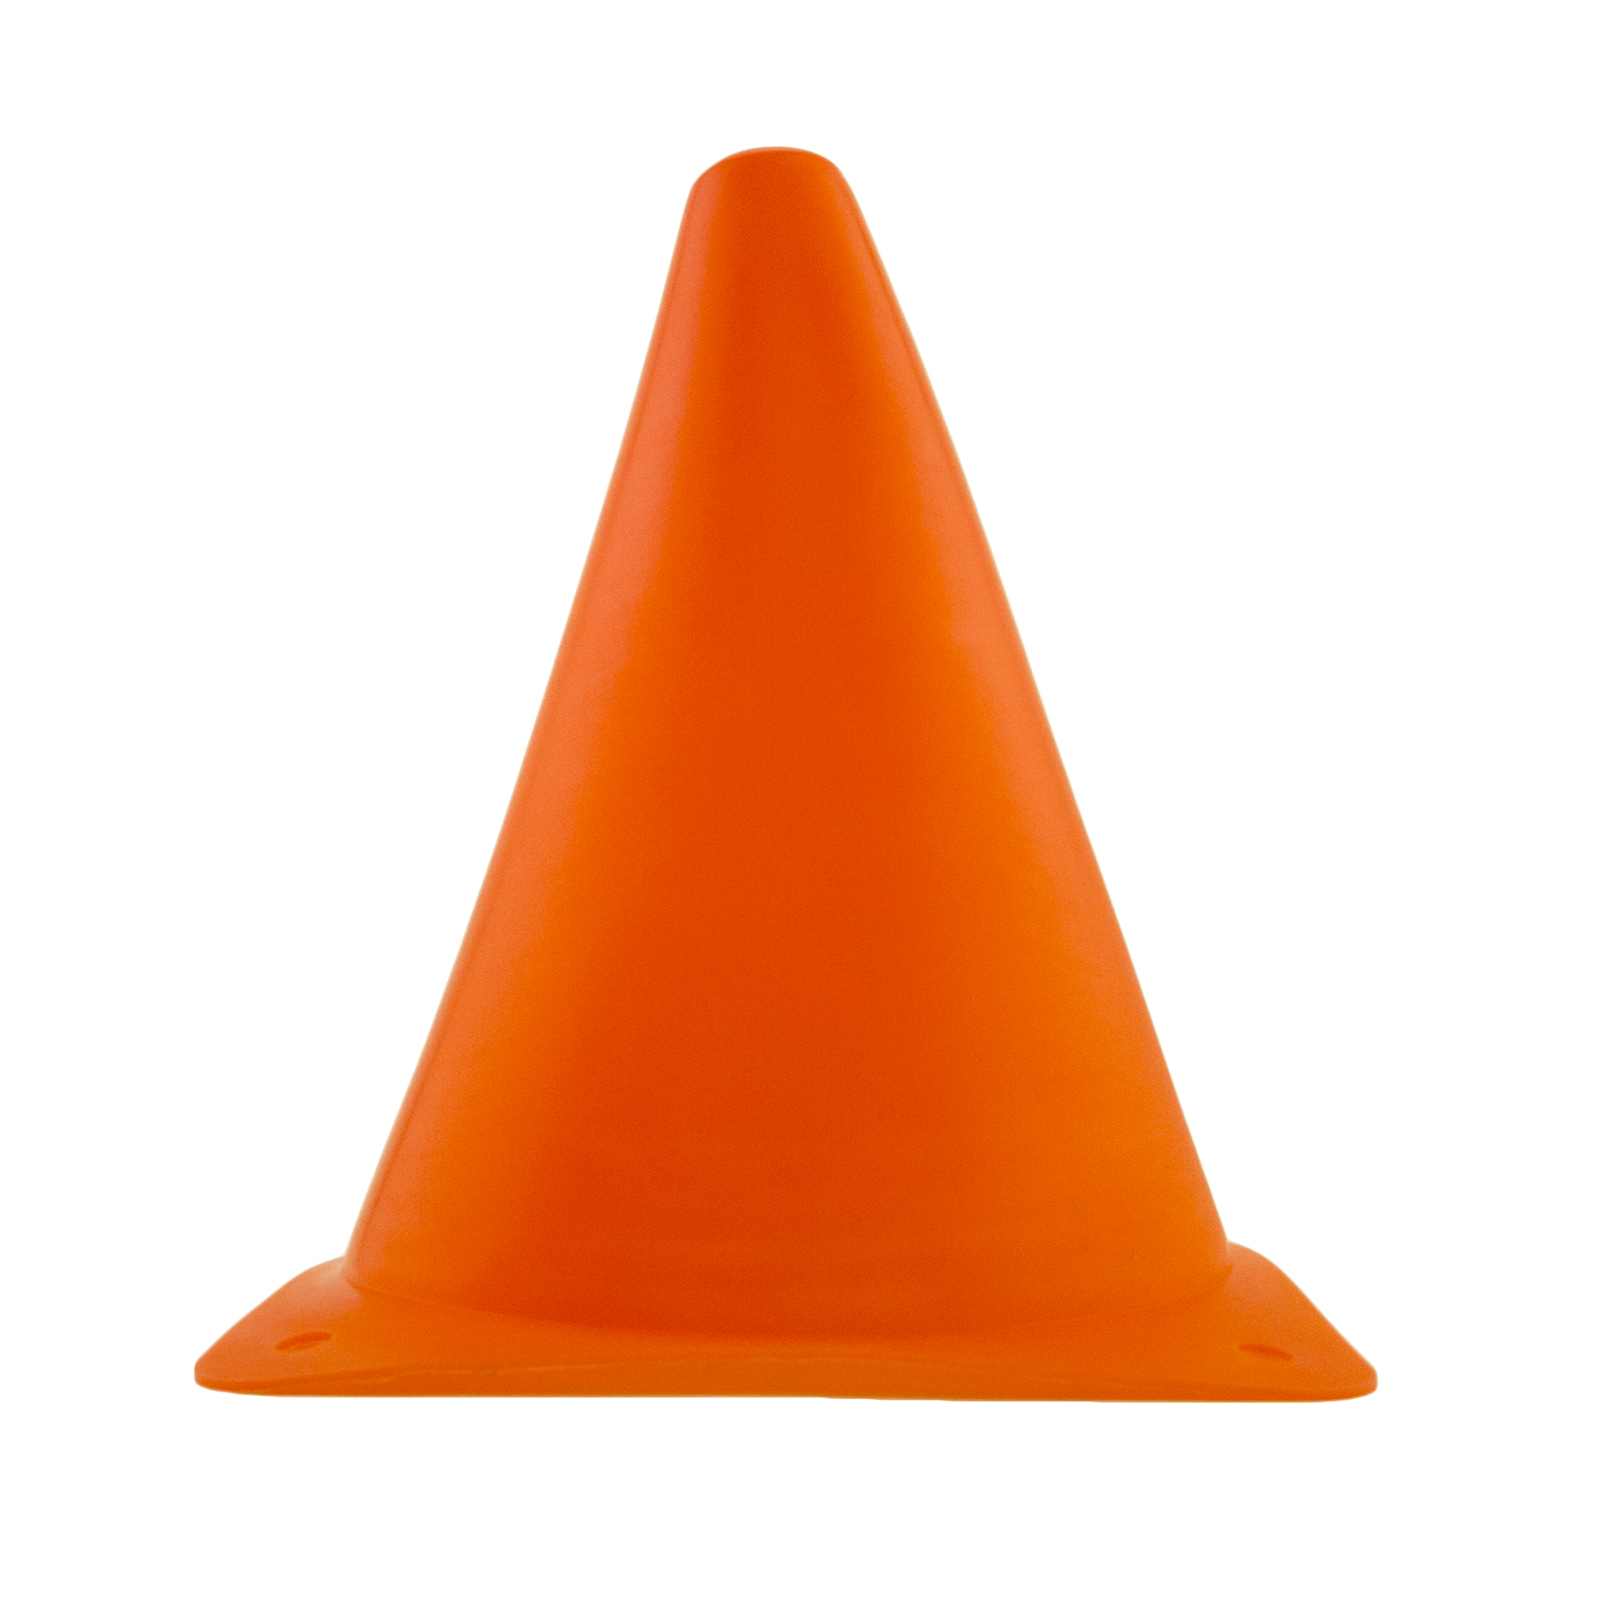 Tall Home Decor New Training Cones 7 Quot Tall Sports Orange Traffic Safety